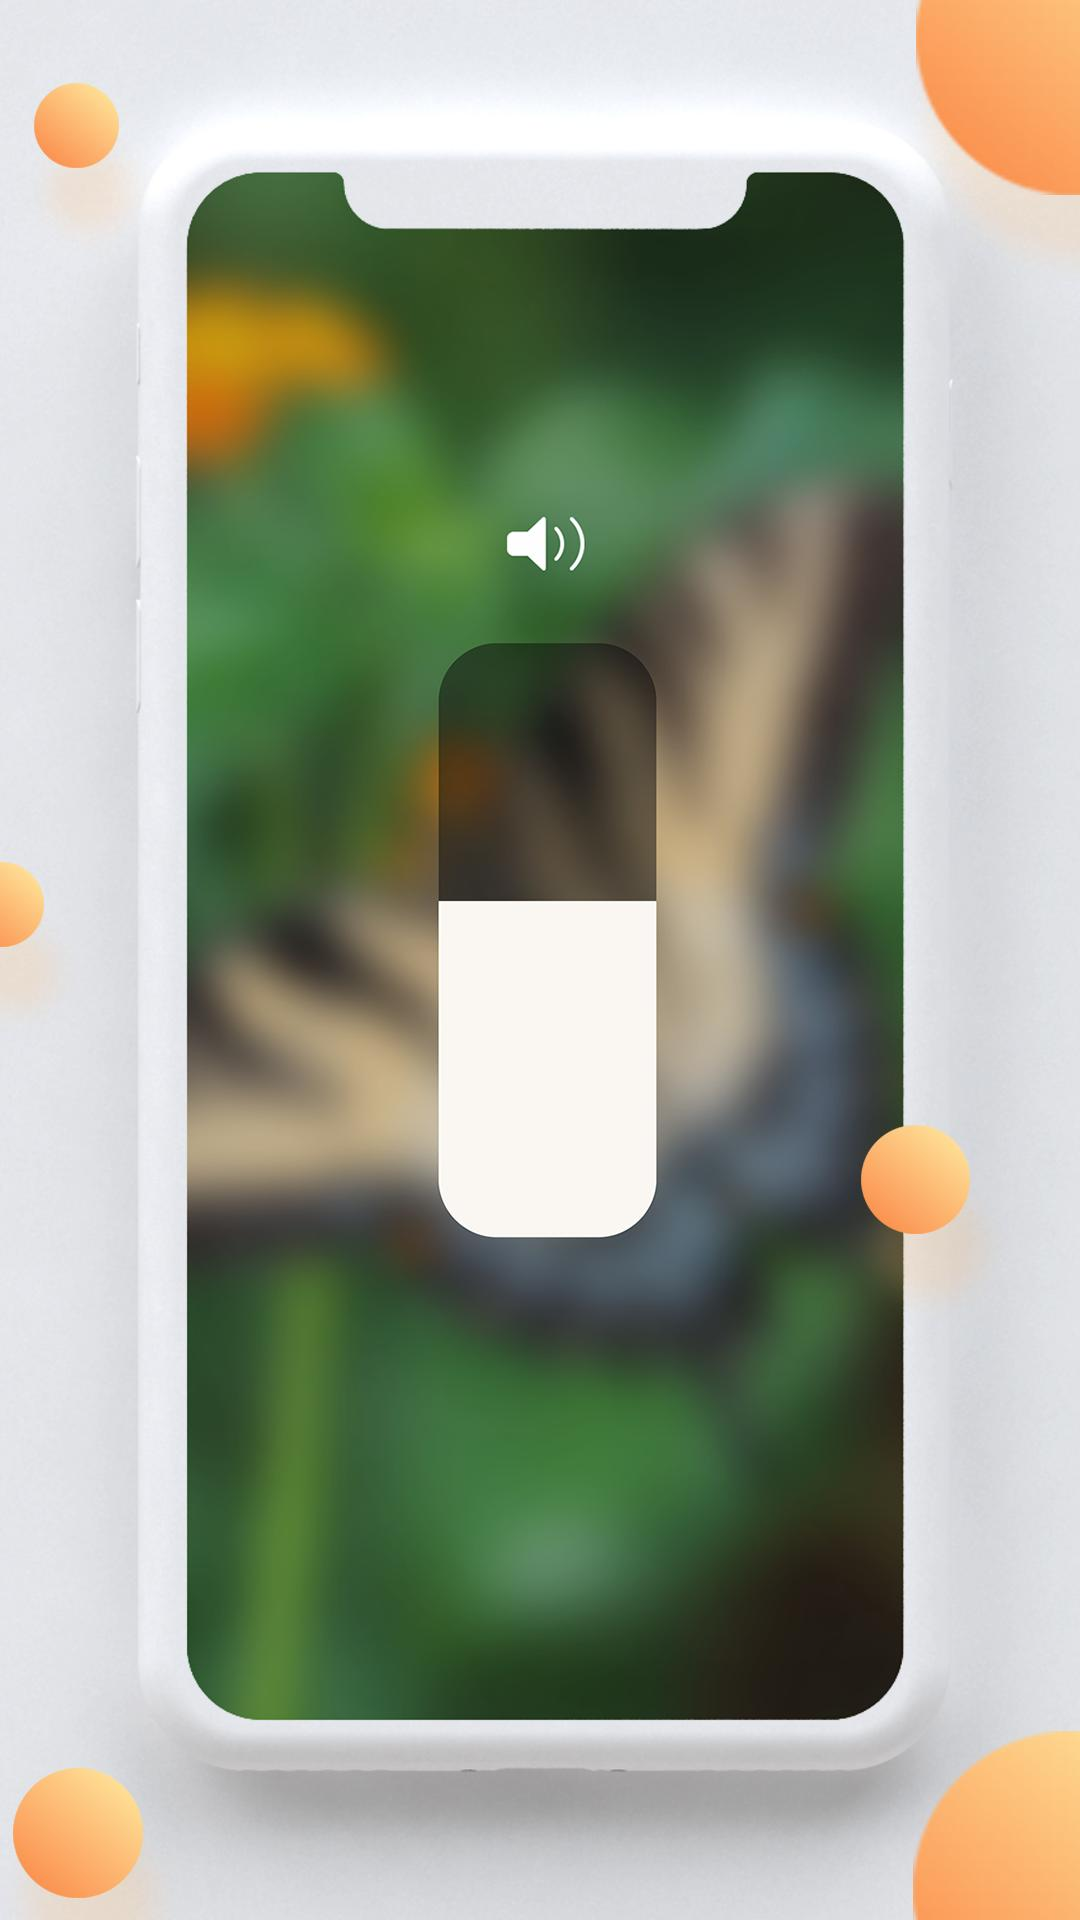 Control Center OS 12 for Android - APK Download